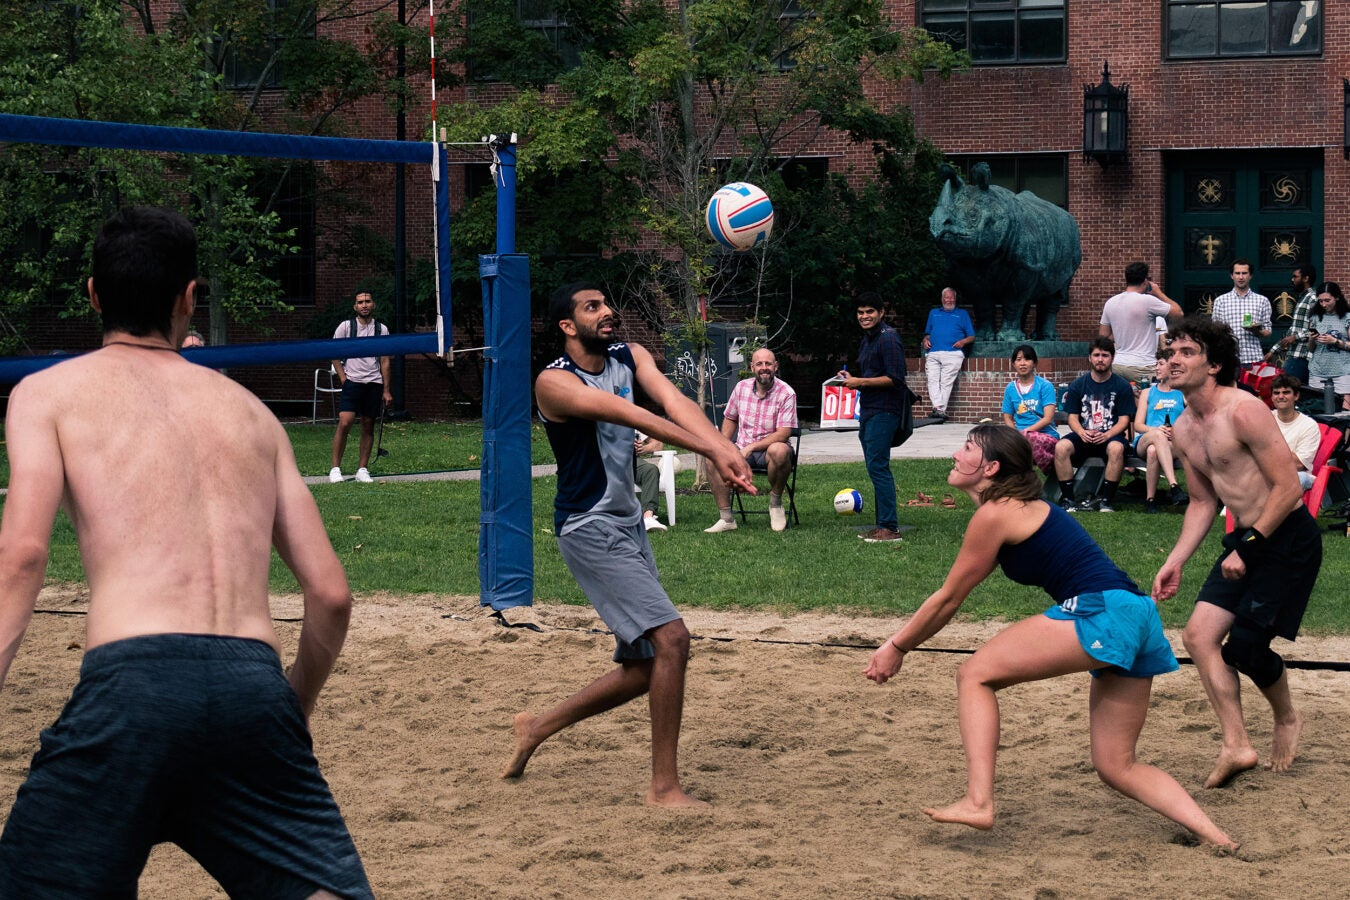 People playing volleyball.